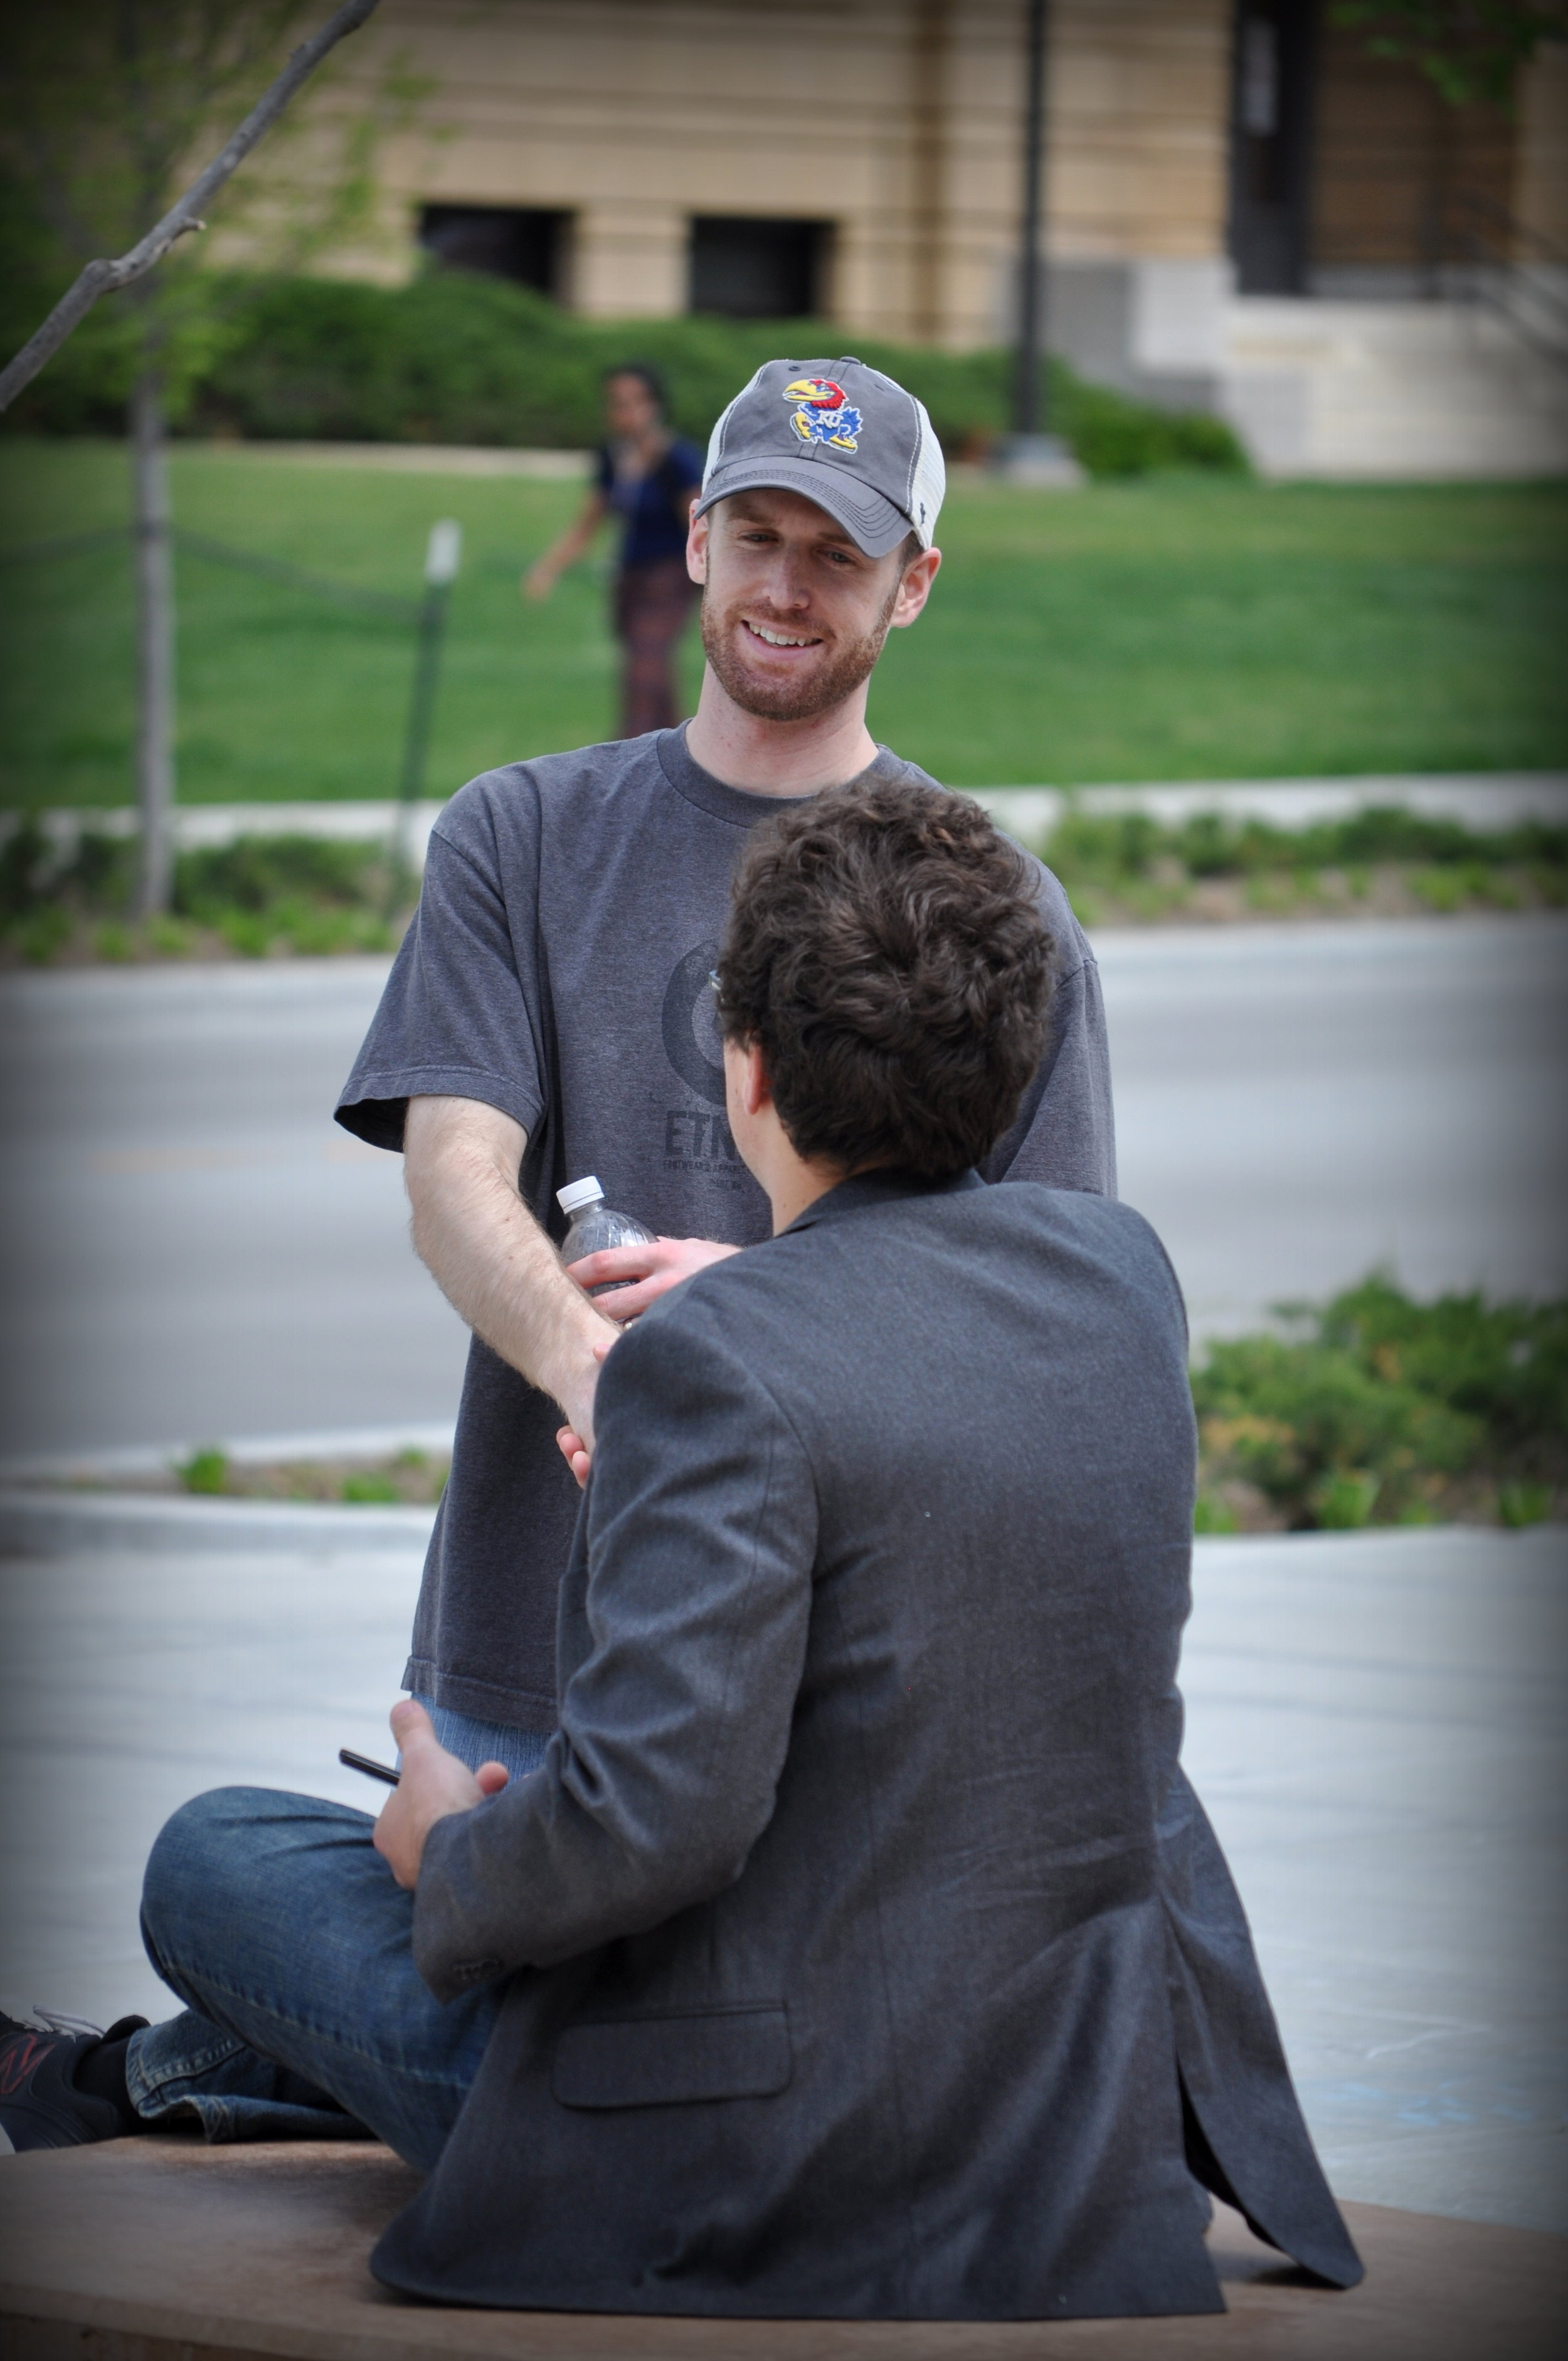 Spencer Stewart talks with a University of Kansas (KU) student at a JFA outreach event in April 2015.